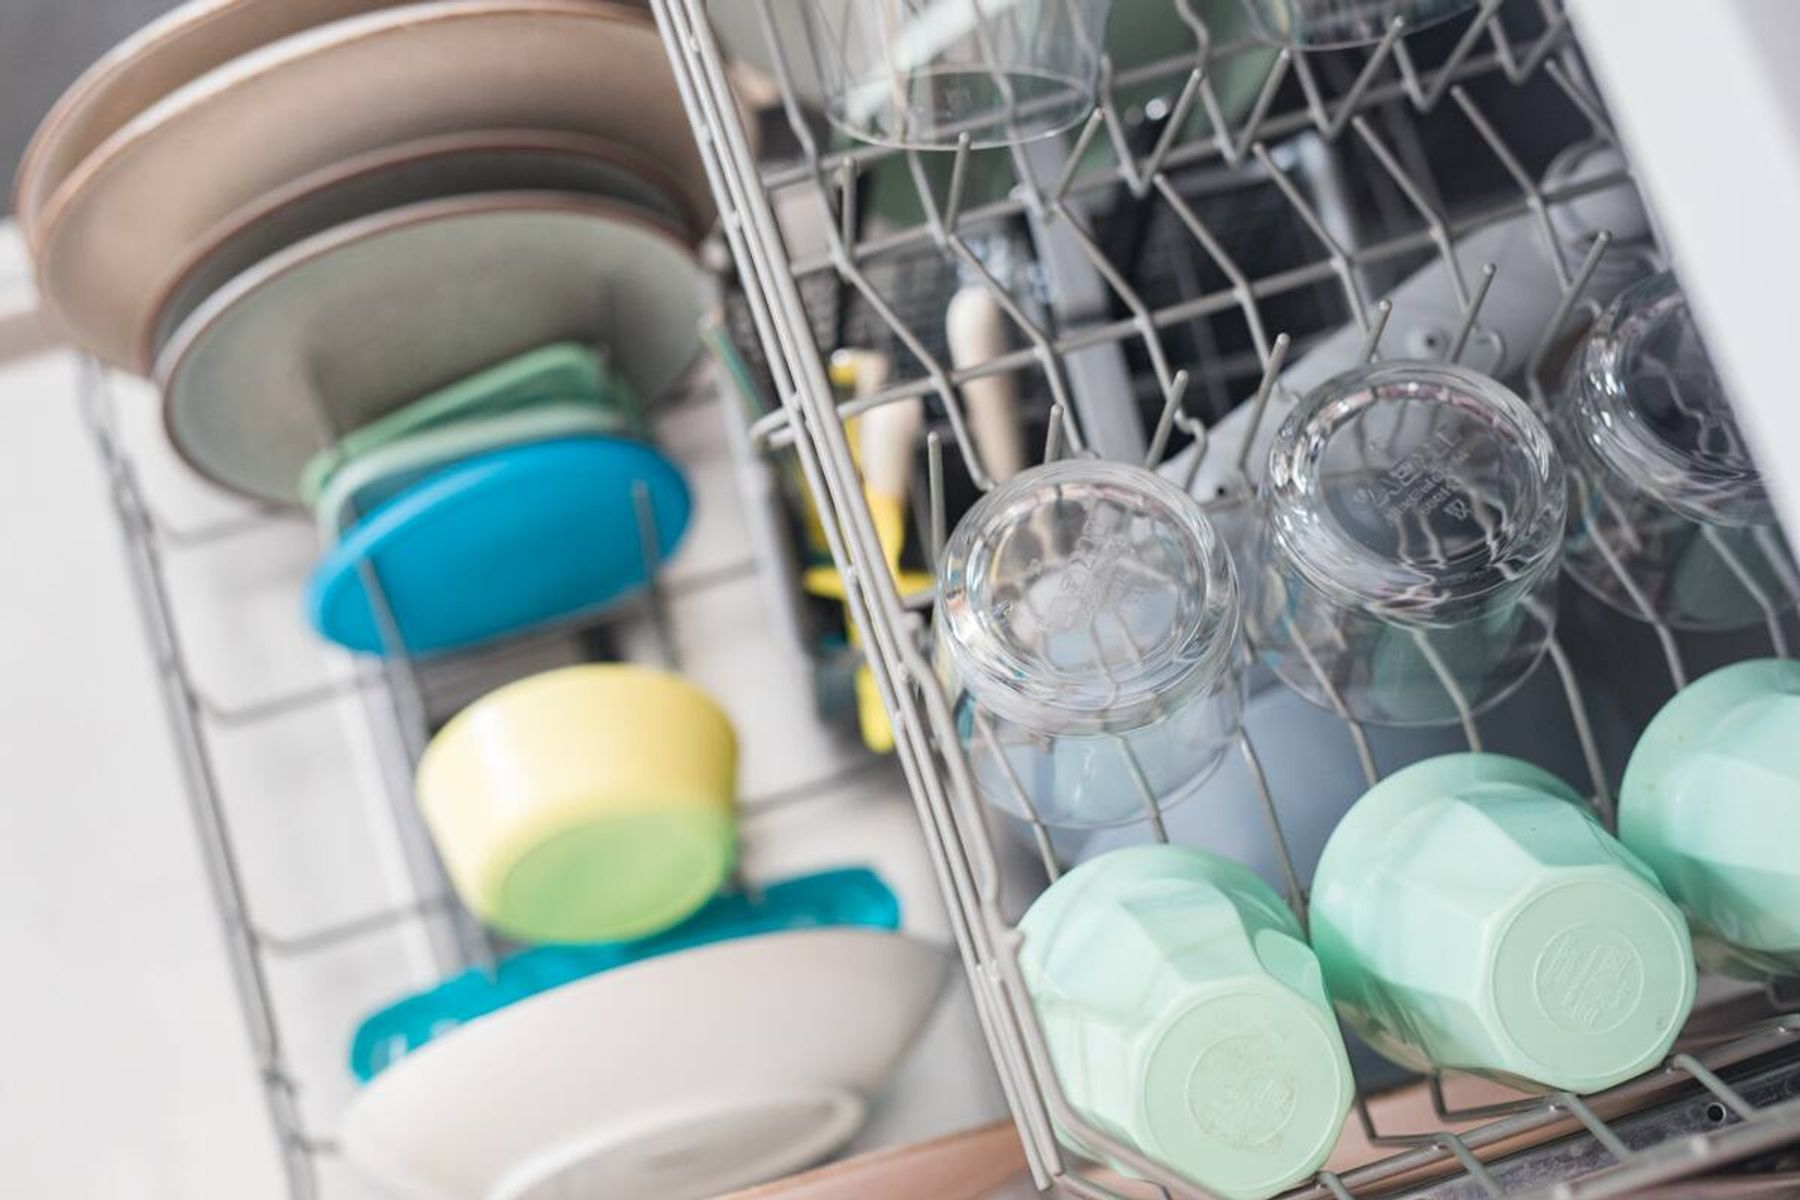 A dishwasher filled with dishes